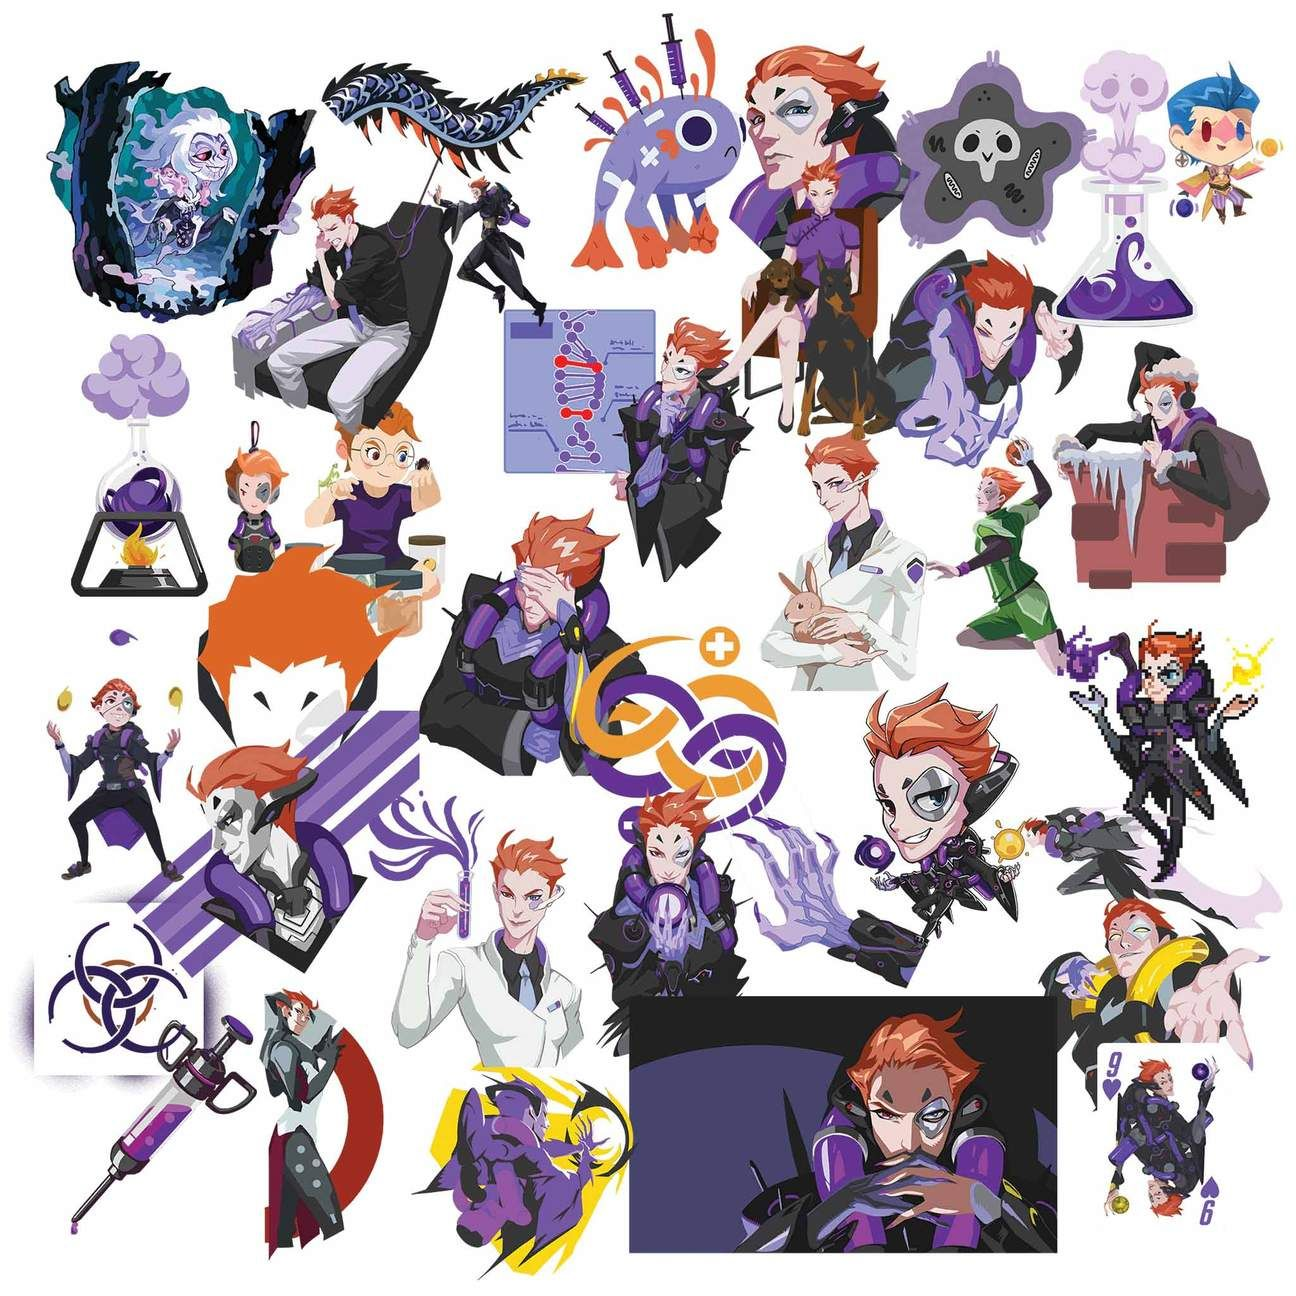 Moira clipart jpg royalty free library Overwatch Moira Clipart in 2019 | Overwatch Clipart ... jpg royalty free library